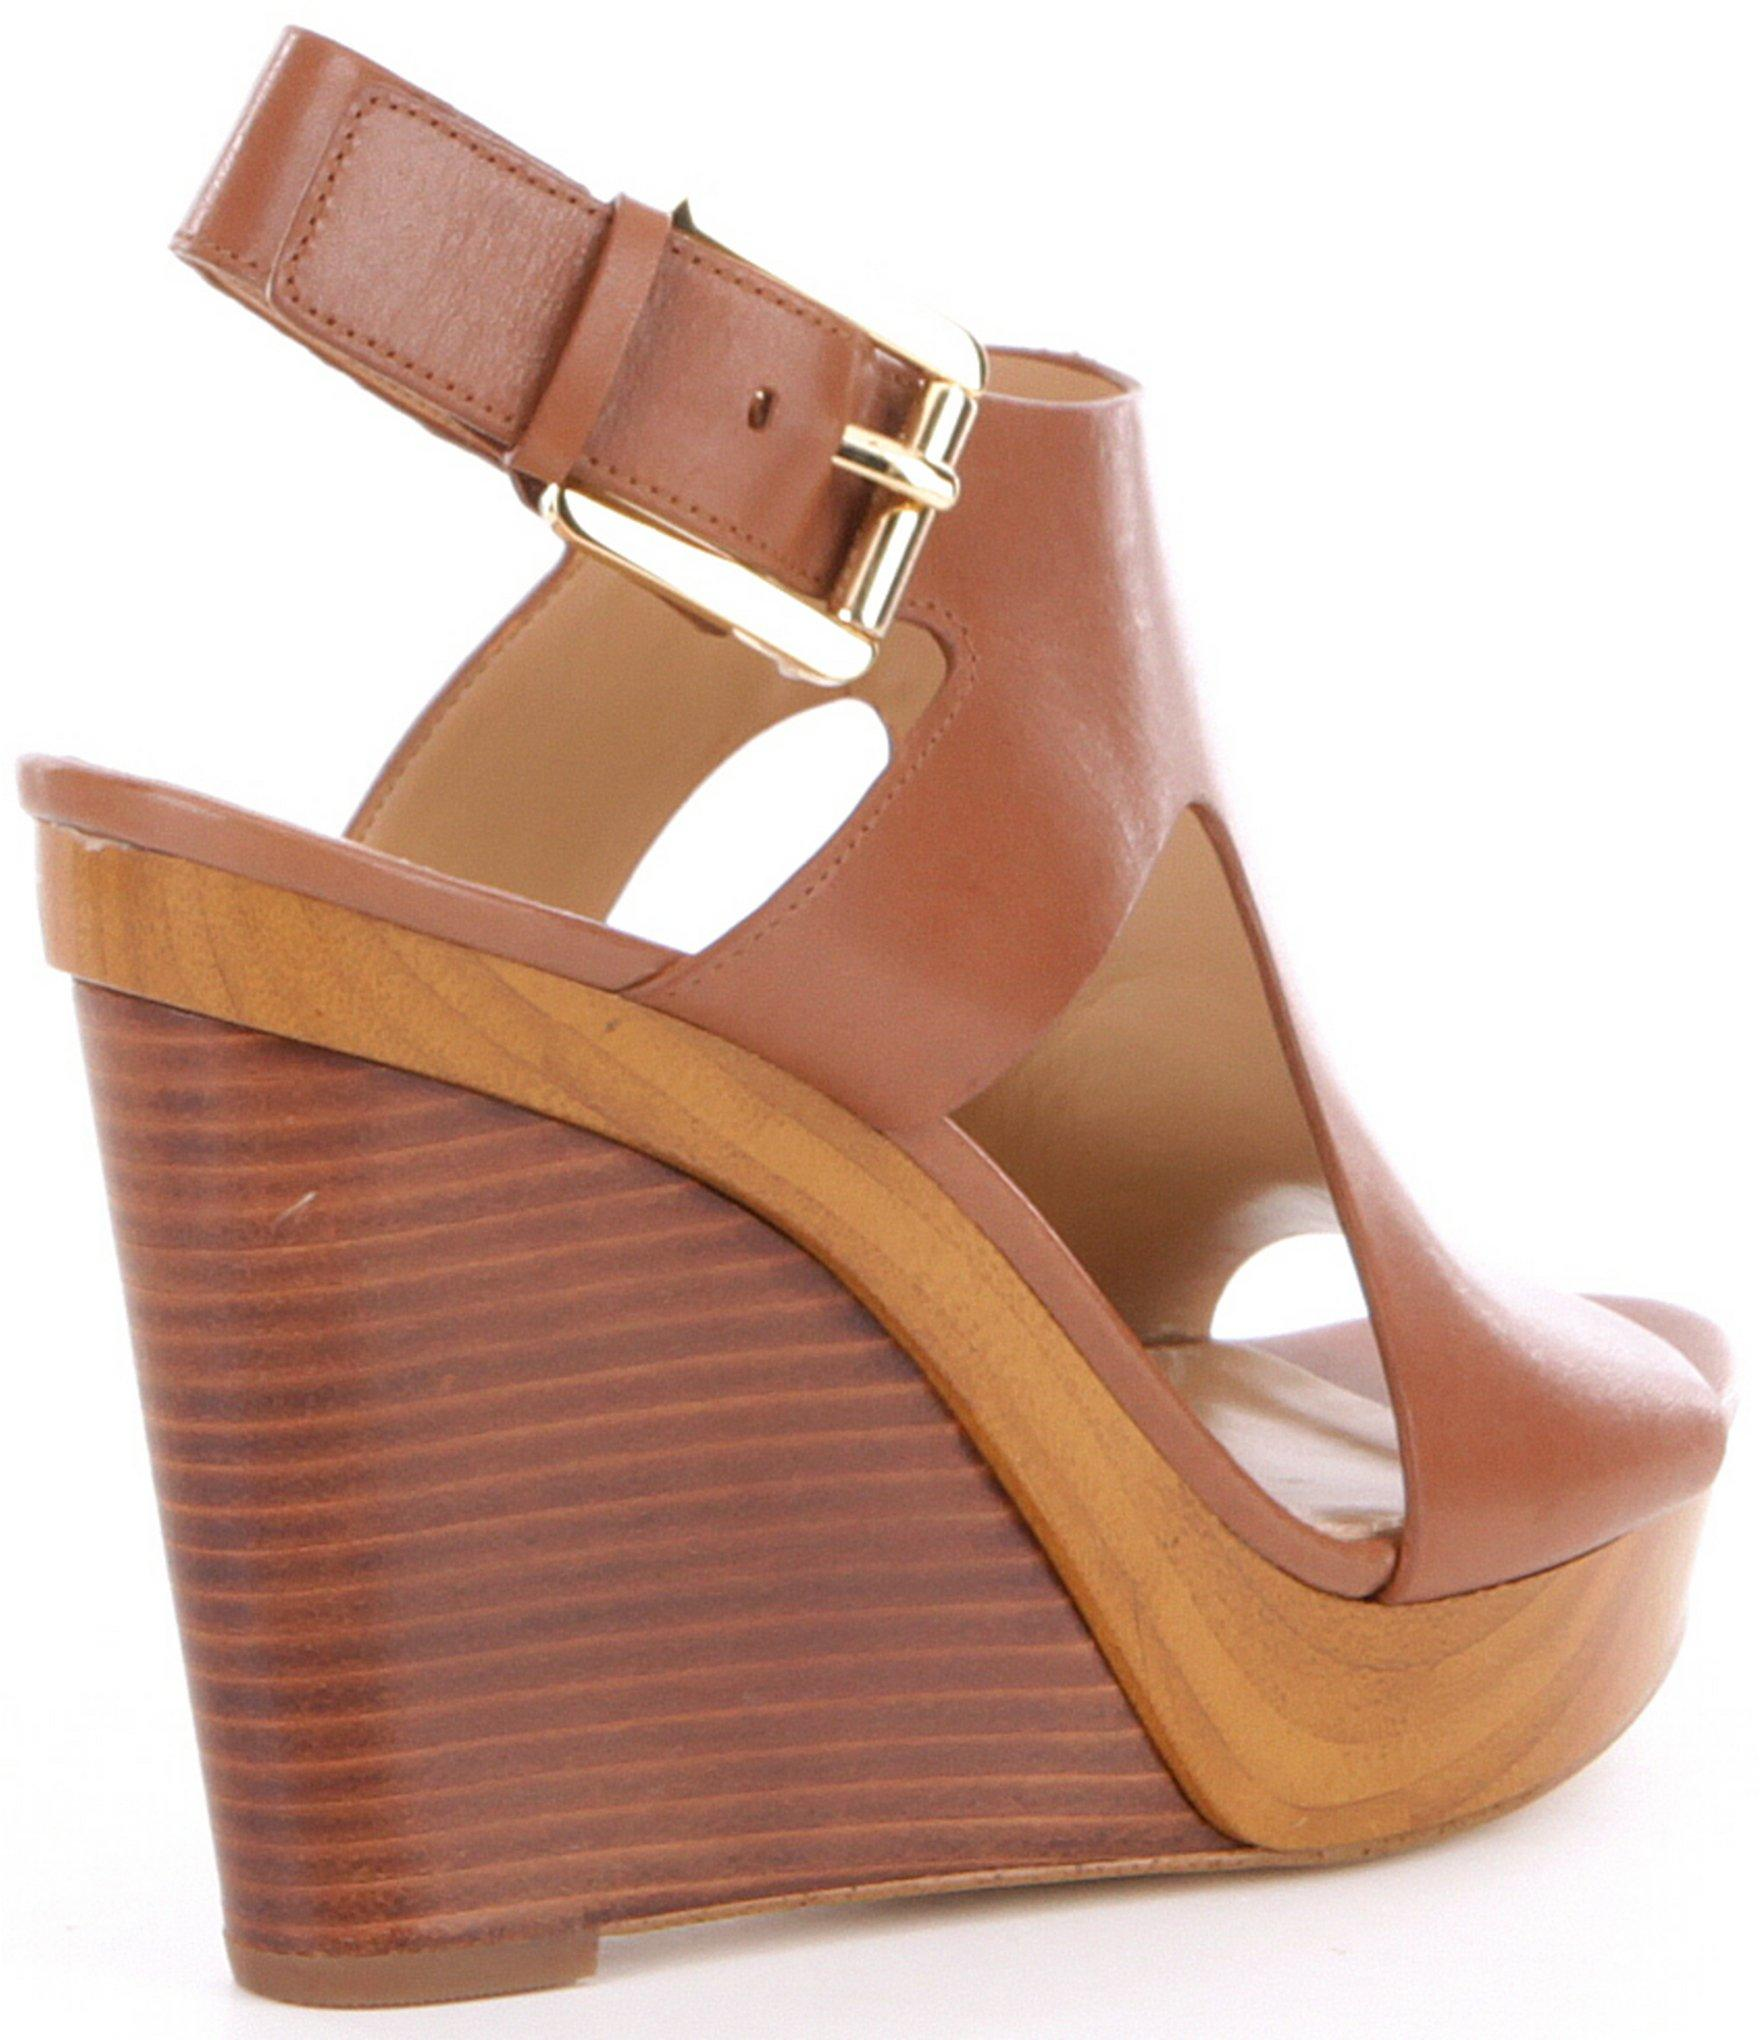 ce8c08314f7 MICHAEL Michael Kors - Brown Josephine Leather Peep Toe Wedges - Lyst. View  fullscreen